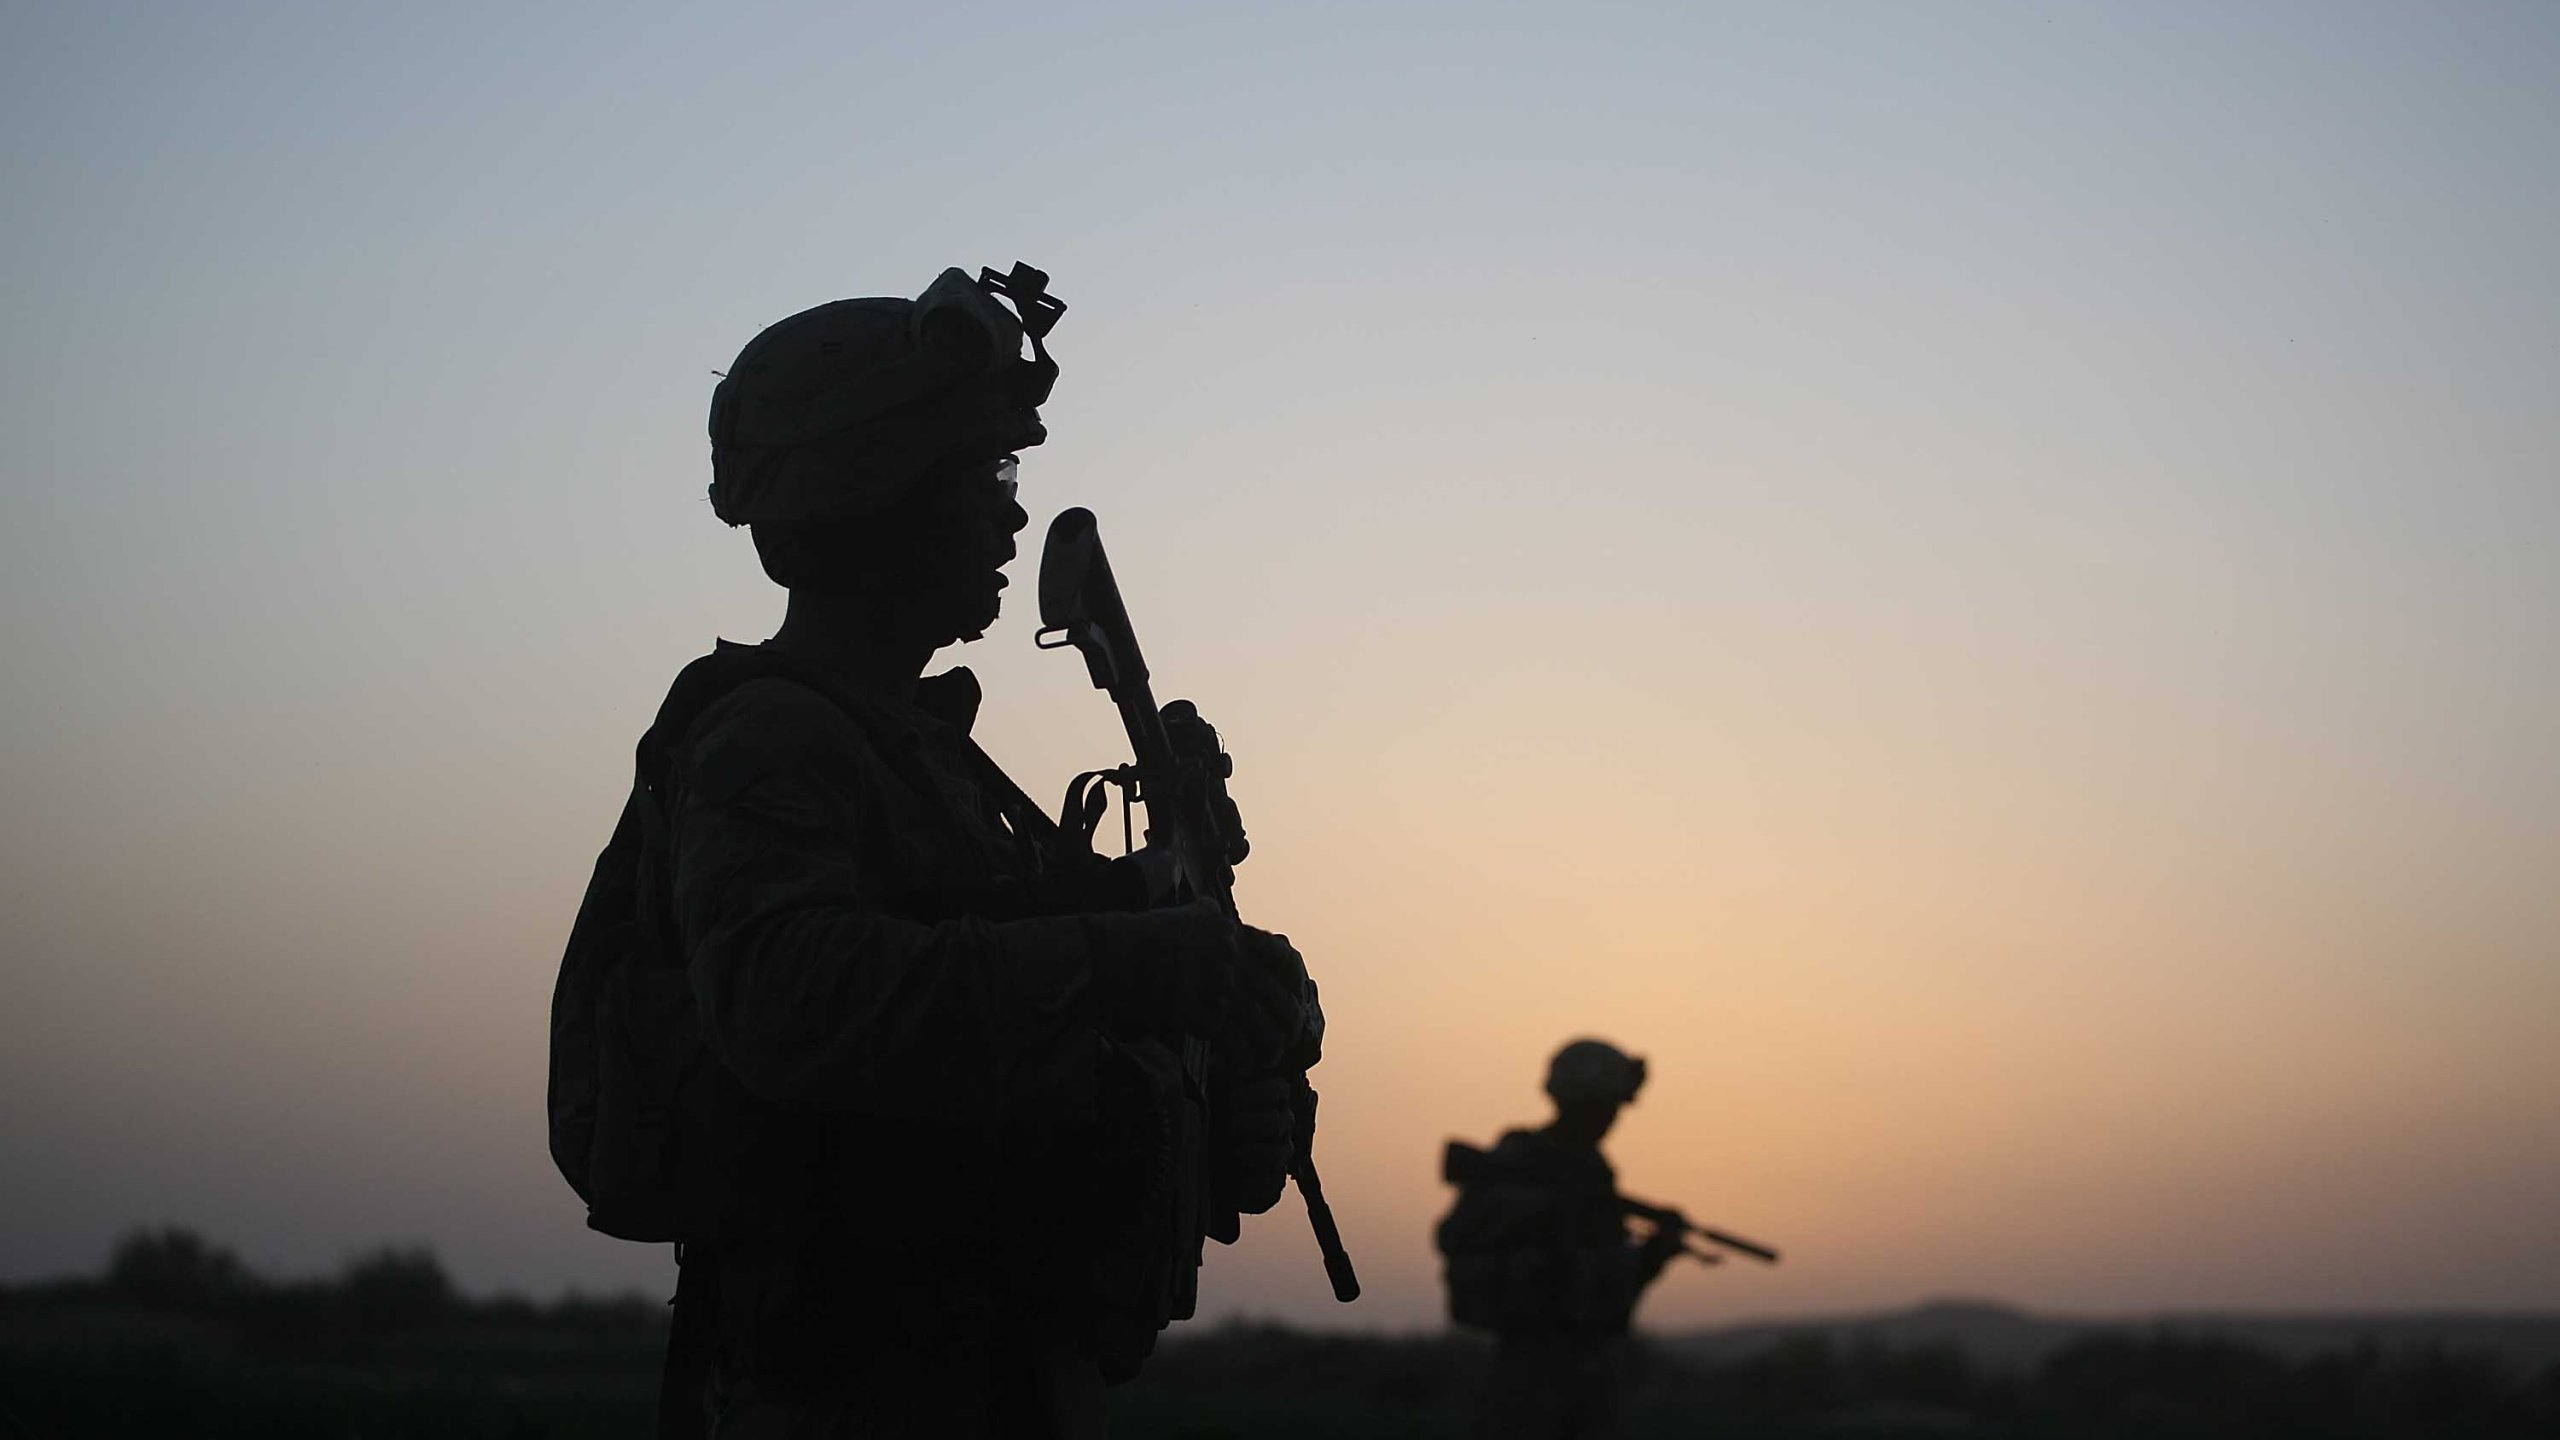 U.S. Marines with the 2nd Marine Expeditionary Brigade, RCT 2nd Battalion 8th Marines Echo Co. step off in the early morning during an operation to push out Taliban fighters on July 18, 2009 in Herati, Afghanistan . (Credit; Joe Raedle/Getty Images)